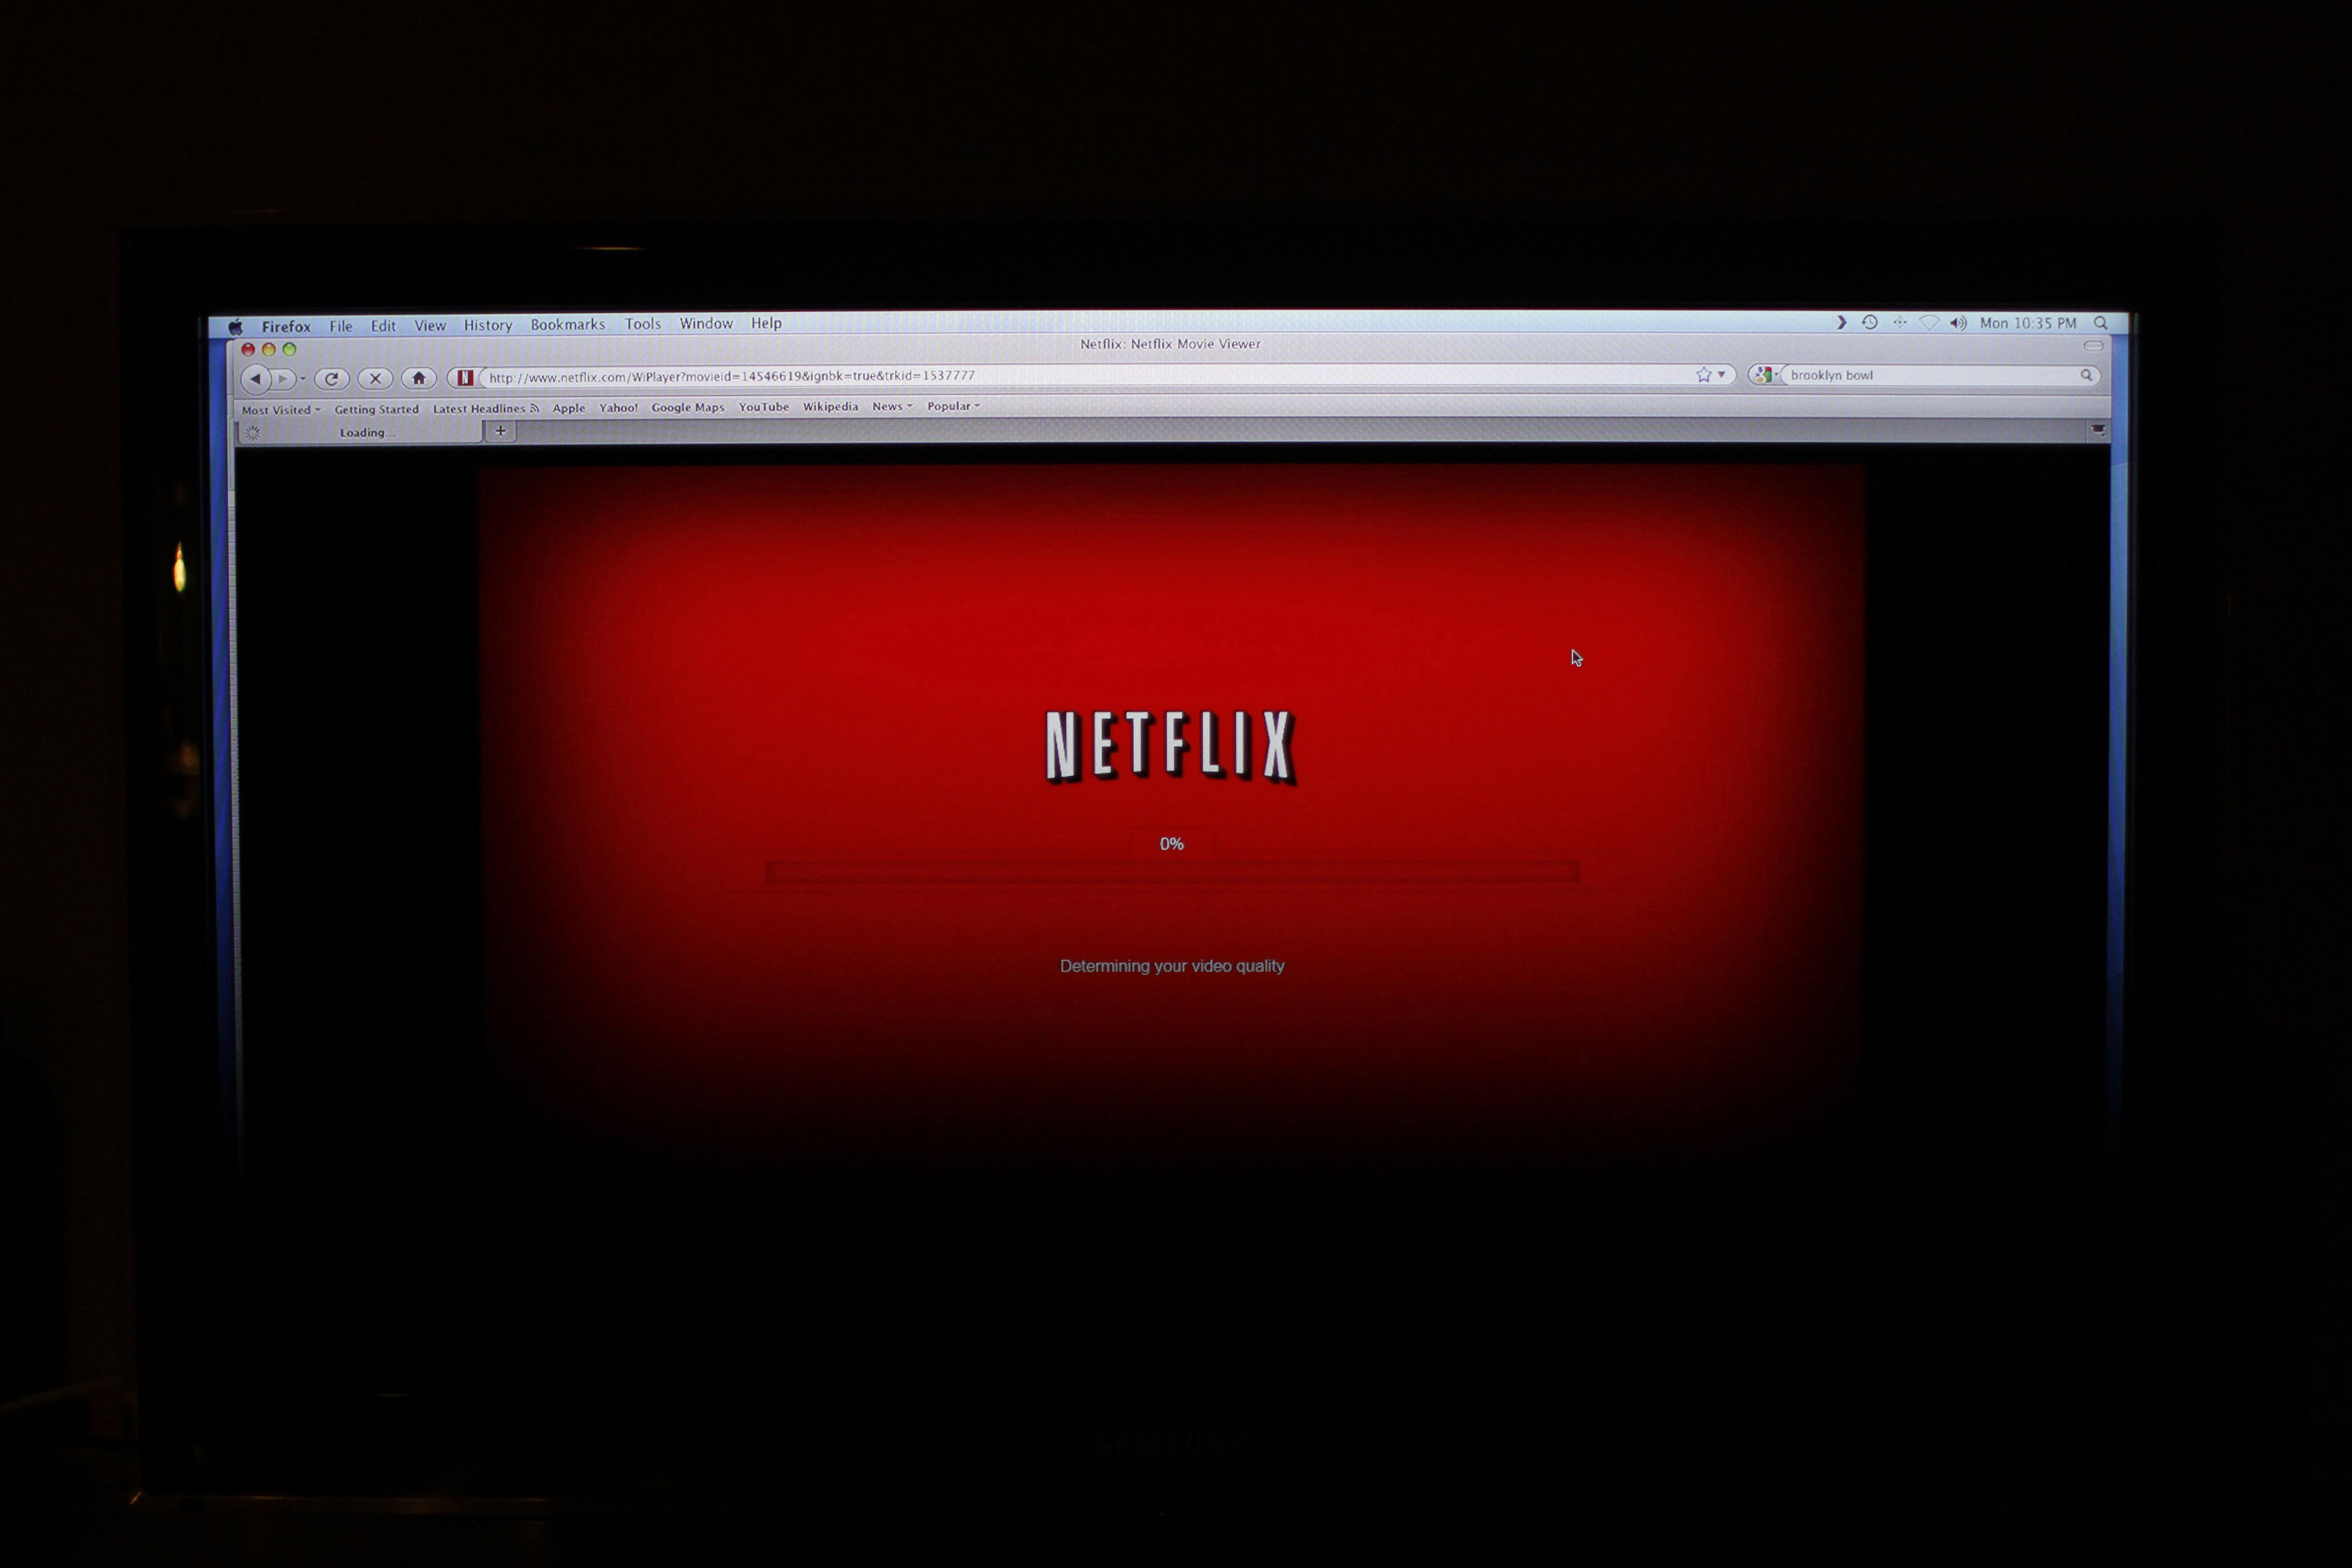 Netflix, Inc Is Marching To 240 Million Subscribers (nflx) Investing Us News